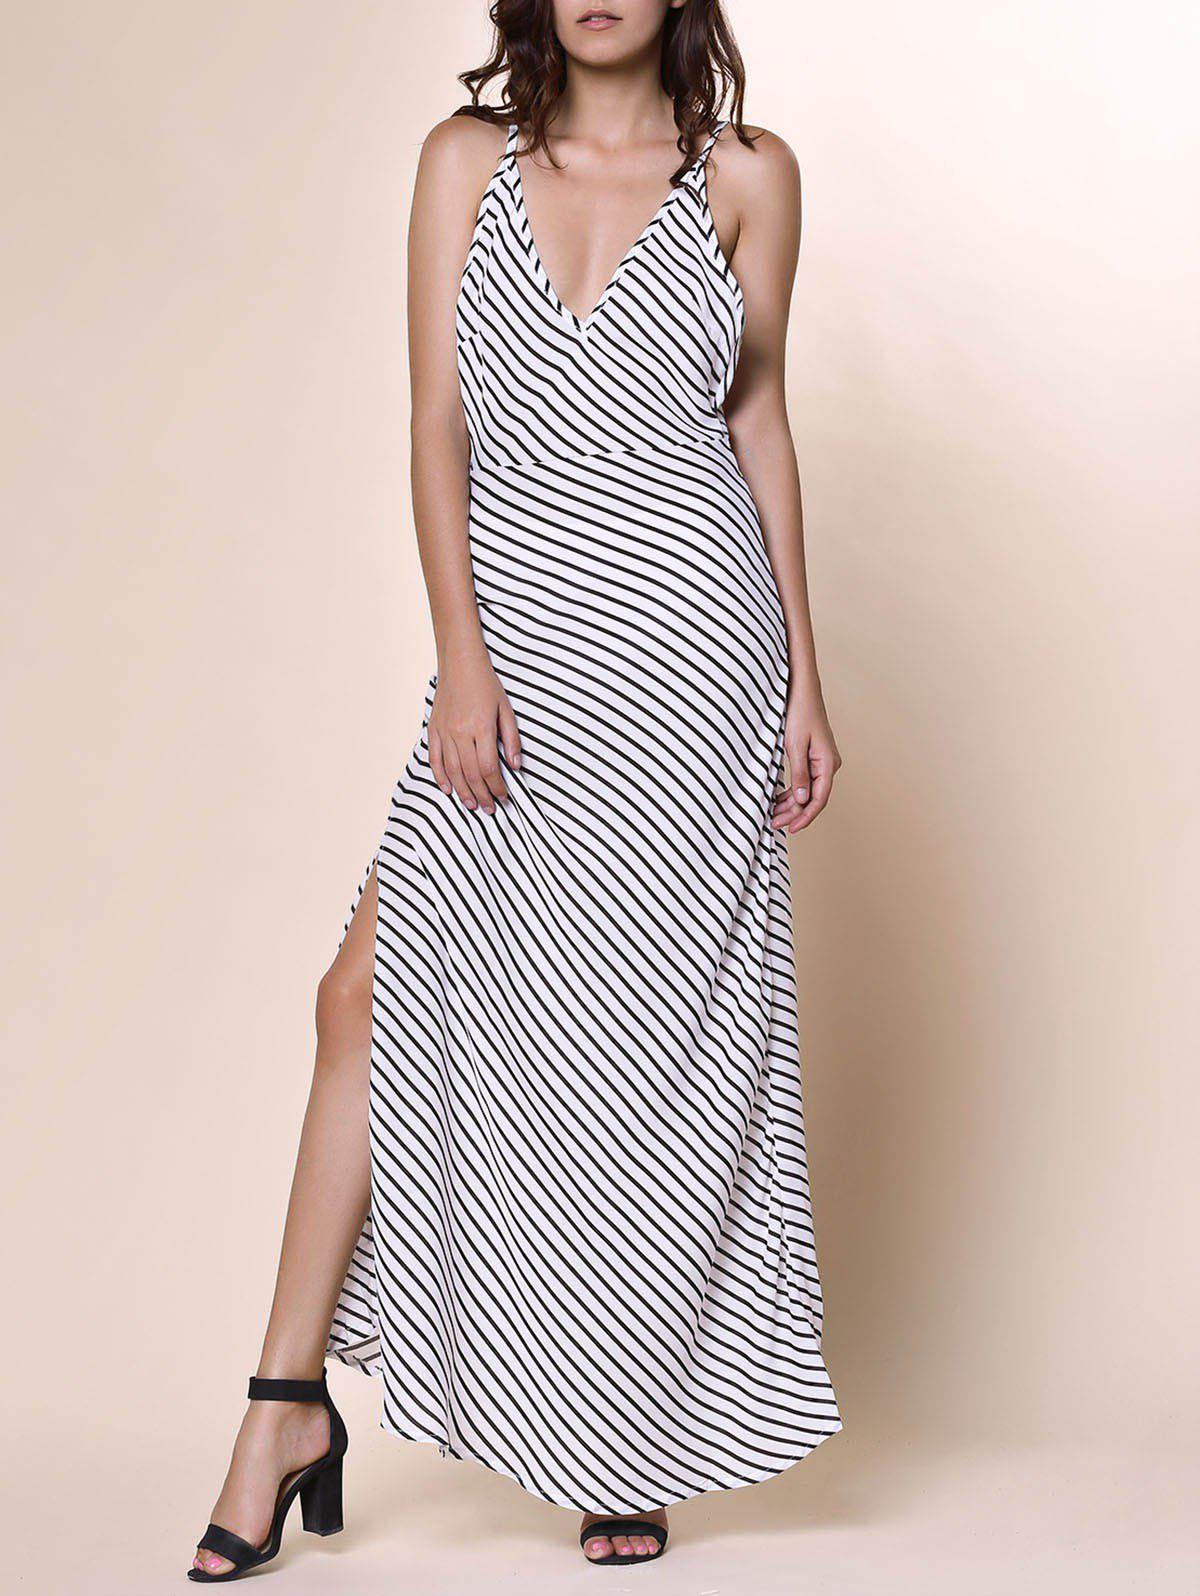 Bohemian Women's Plunging Neckline Striped Backless Dress - WHITE S